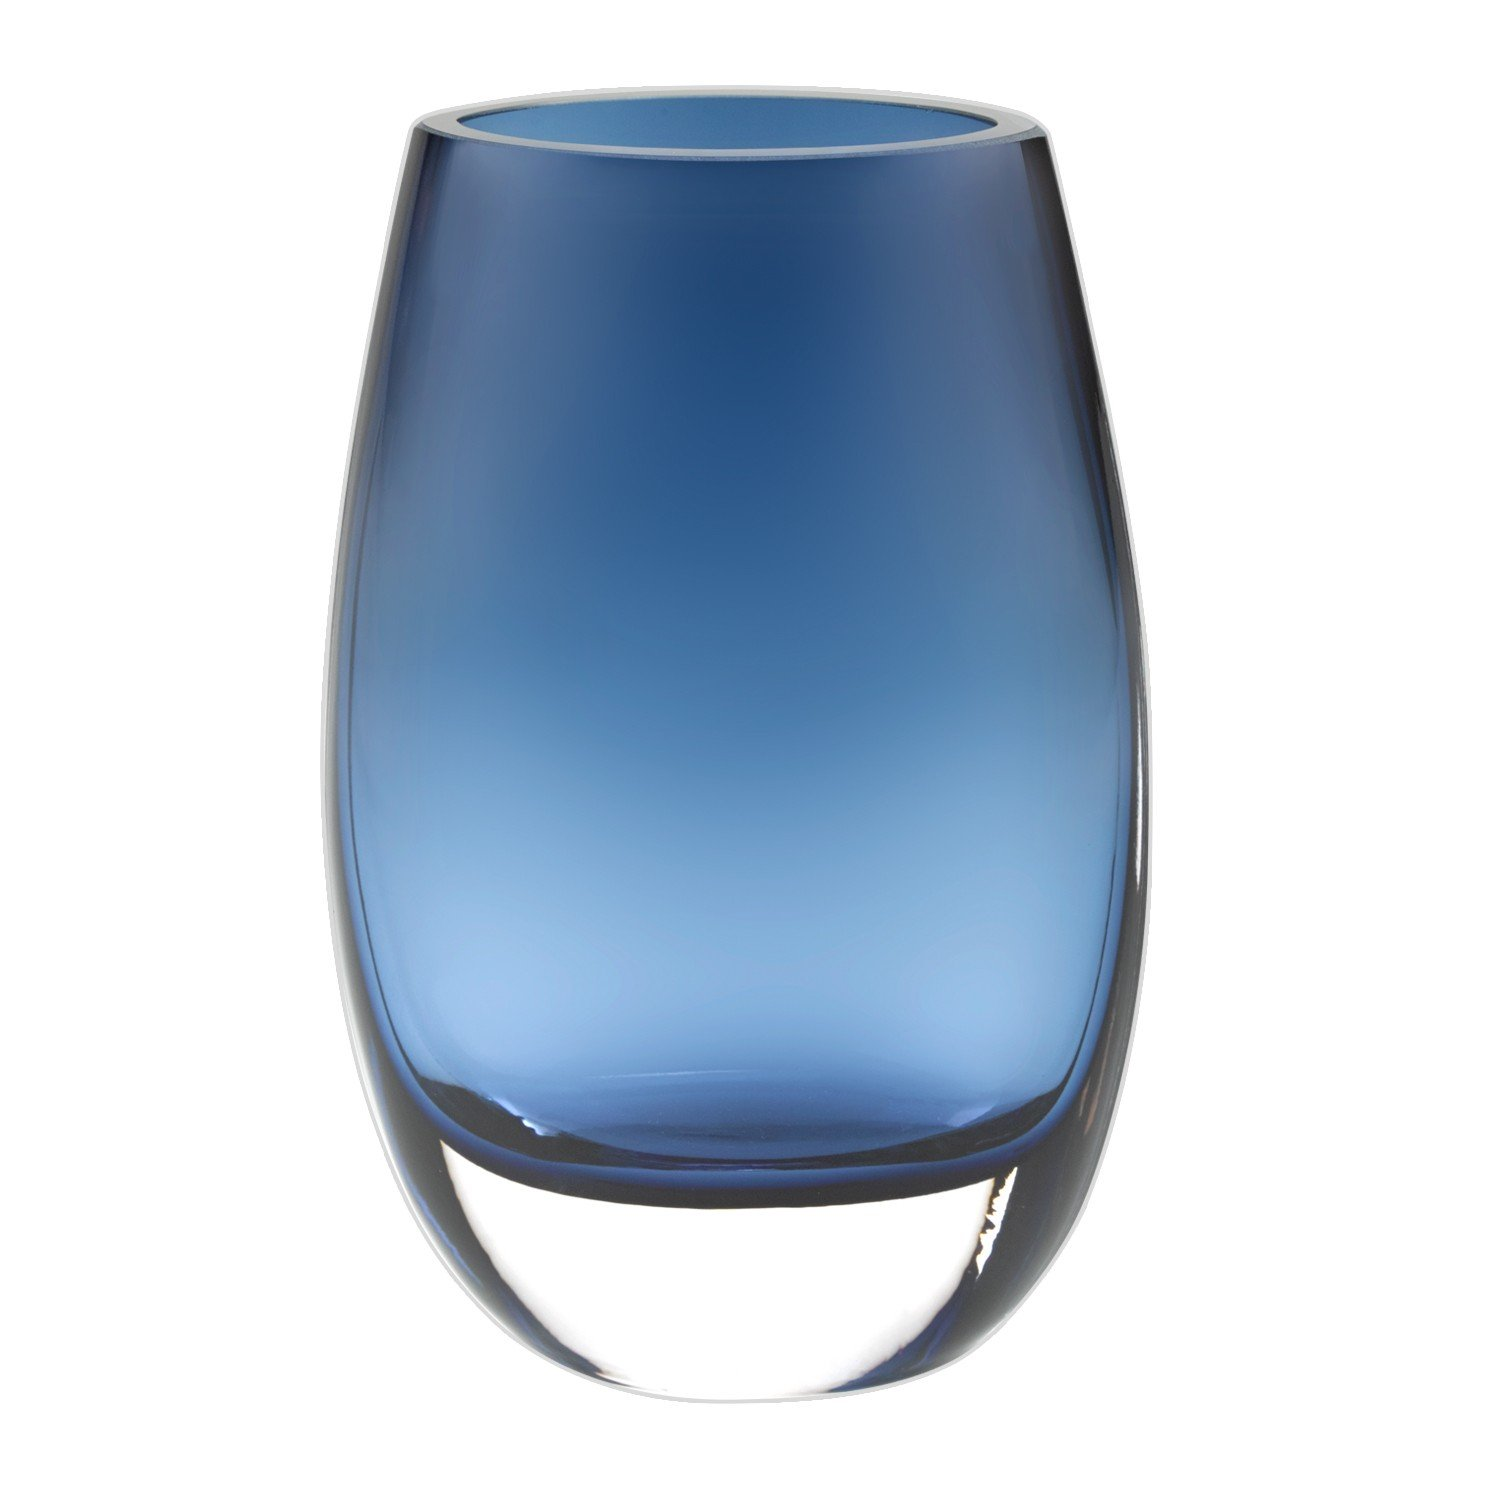 Badash Crescendo Vase - Midnight Blue